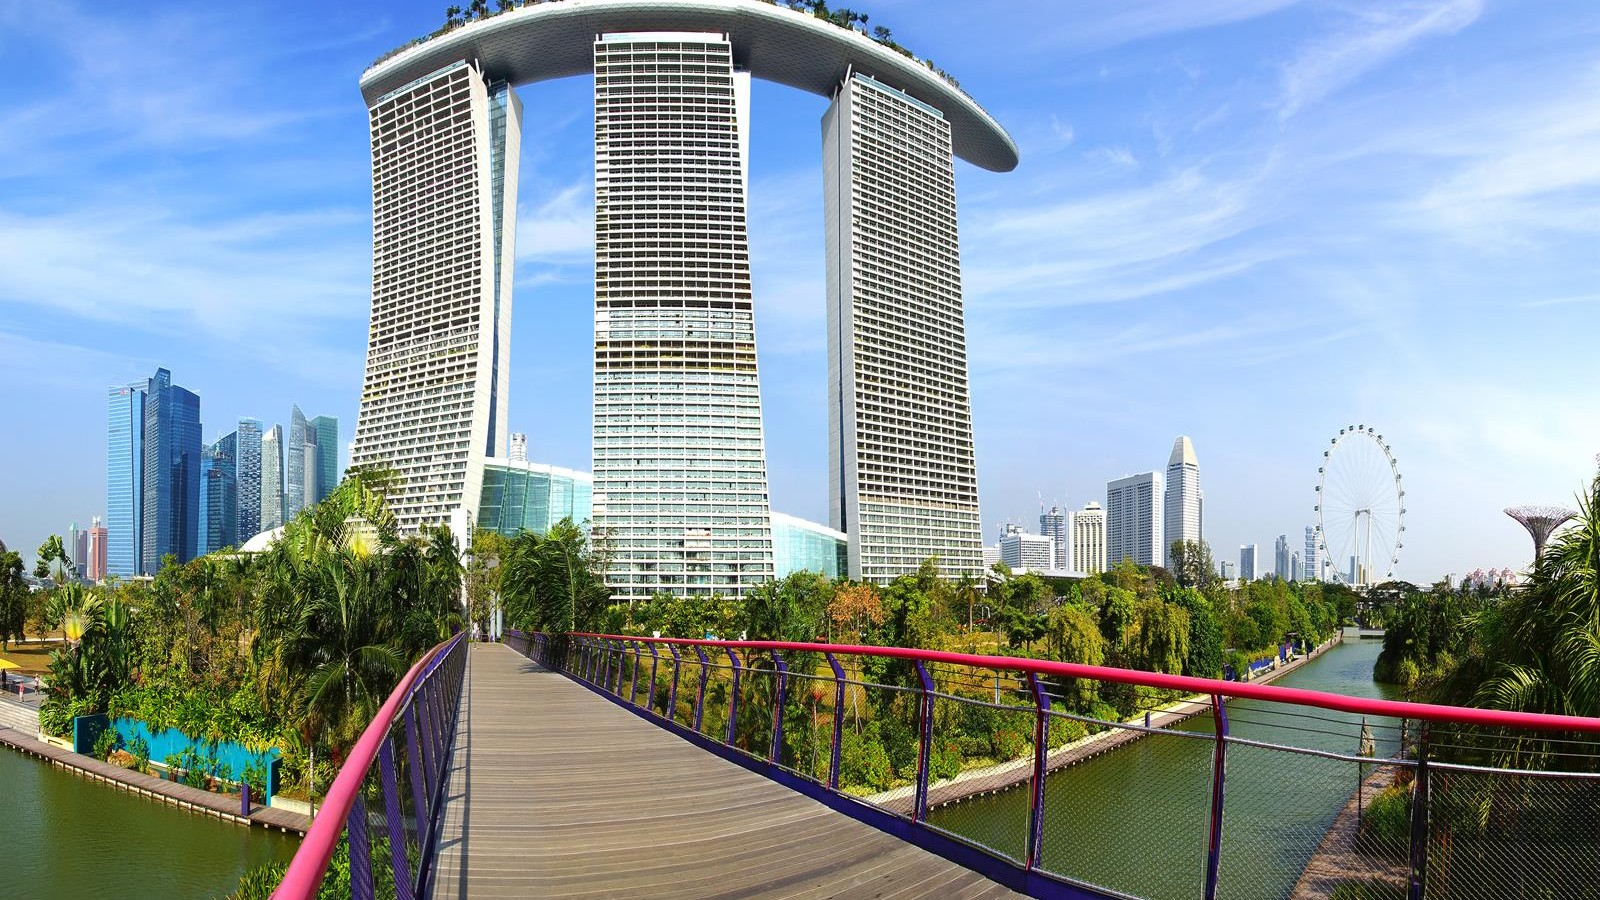 Panoramic view of the Marina Bay Sands, Singapore